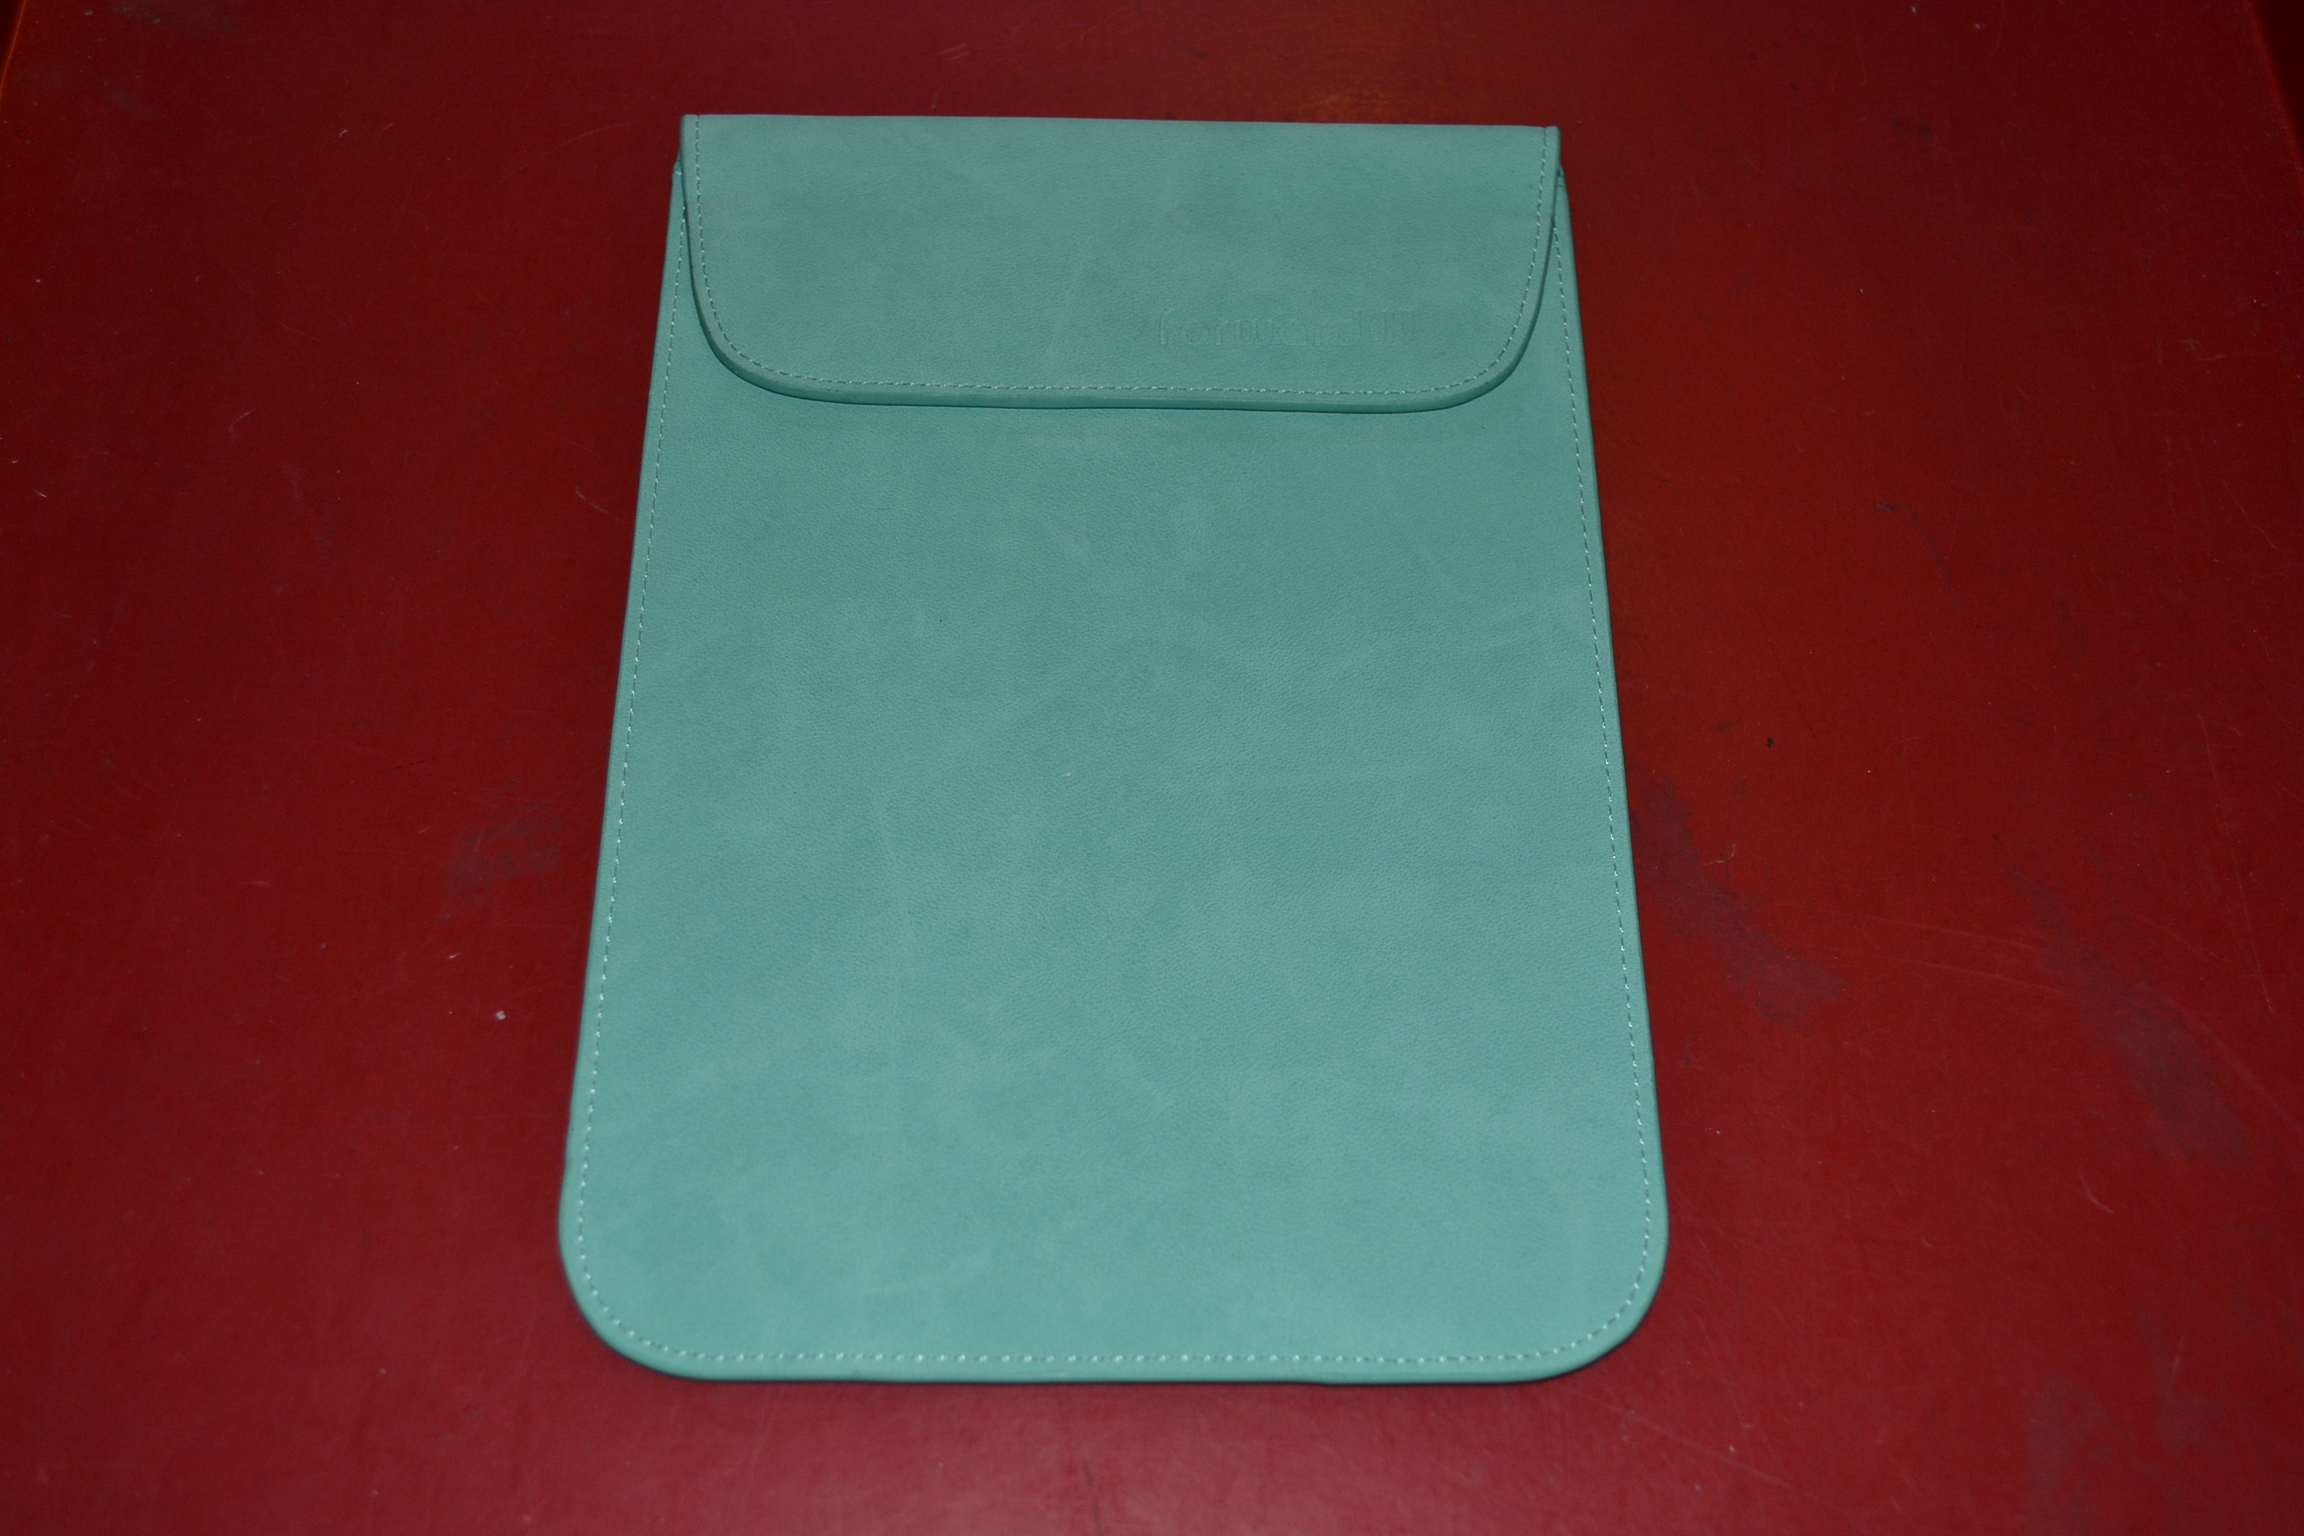 Forward Roll Up Turq Case Cover Green Sleeve/pouch